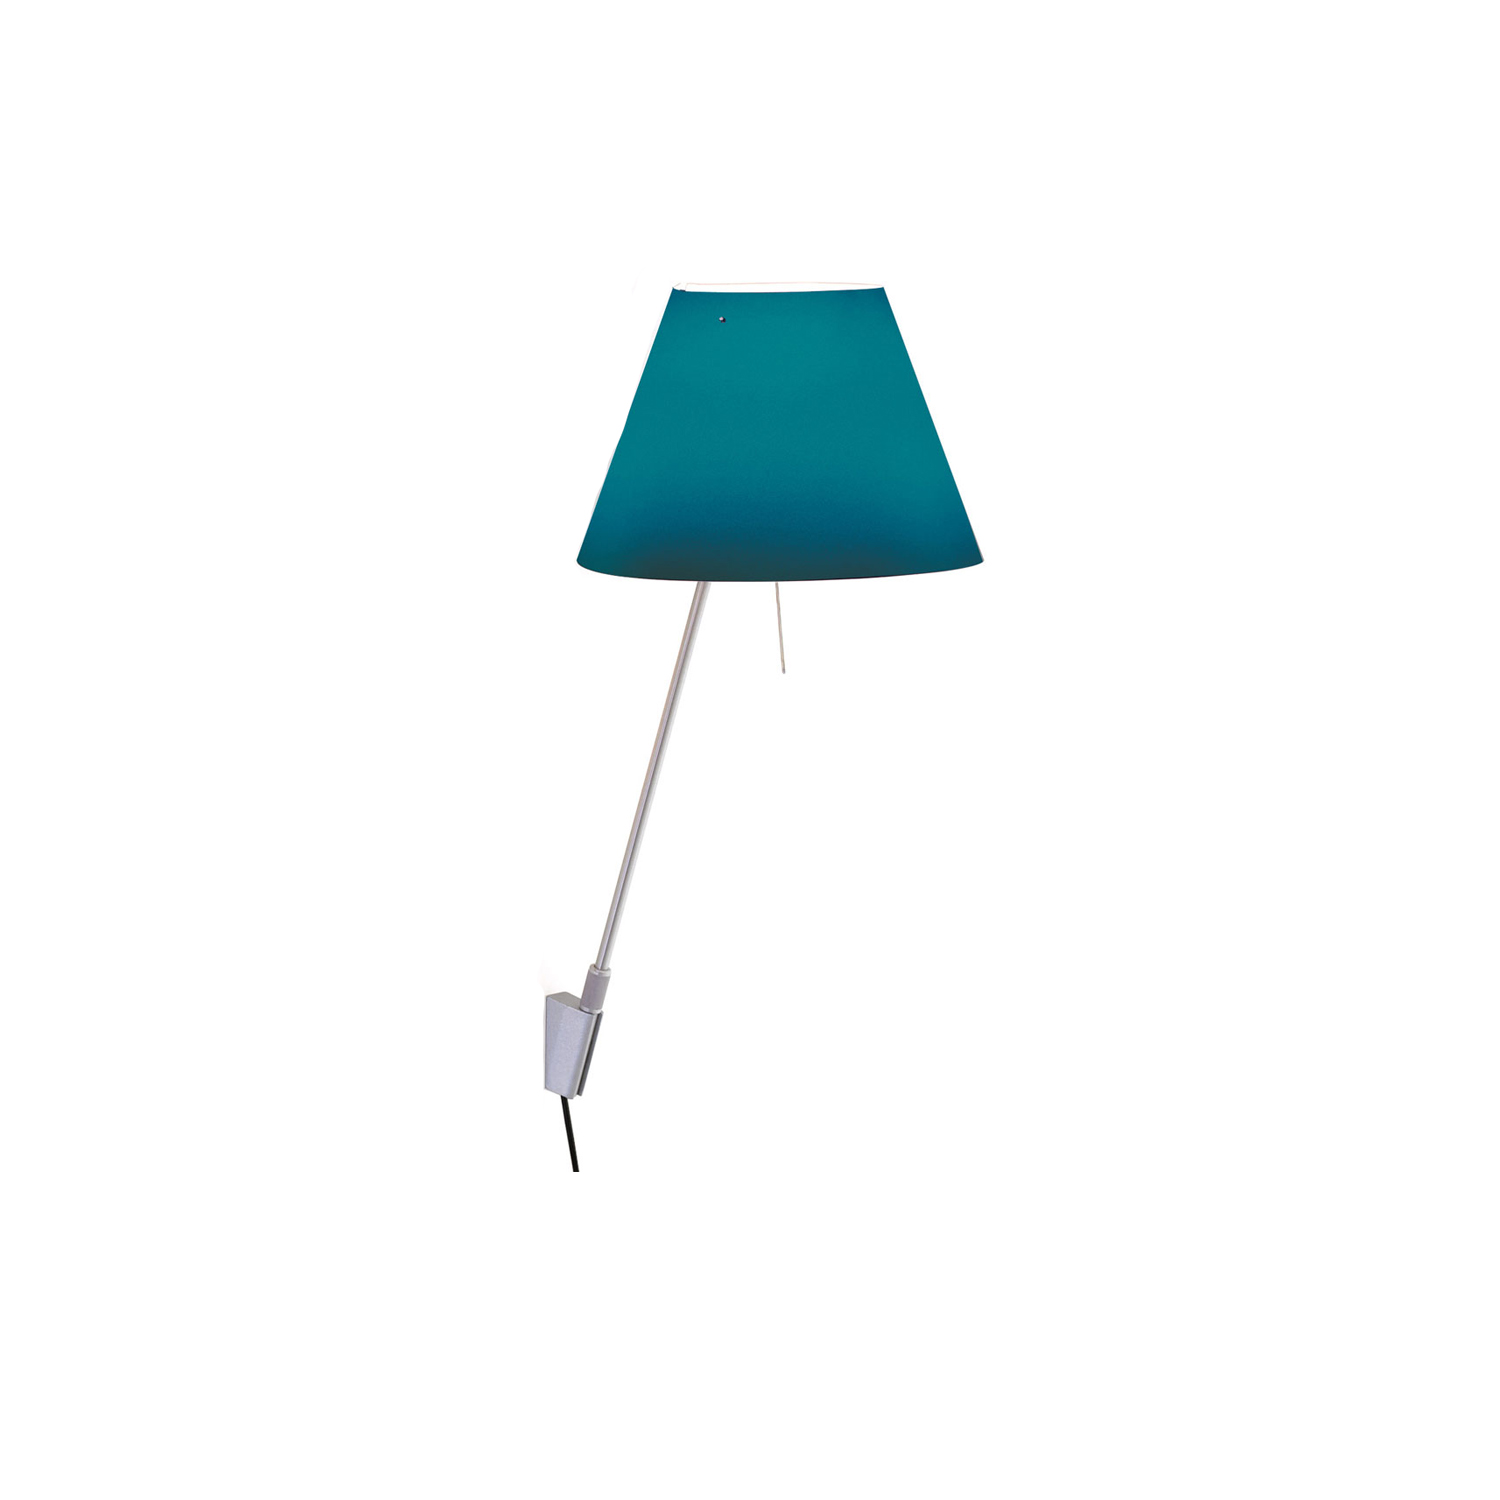 Costanzina Wall Lamp - The polycarbonate shade is light and interchangeable, to warm up any living space. The control rod is within easy reach near the light source.    | Matter of Stuff